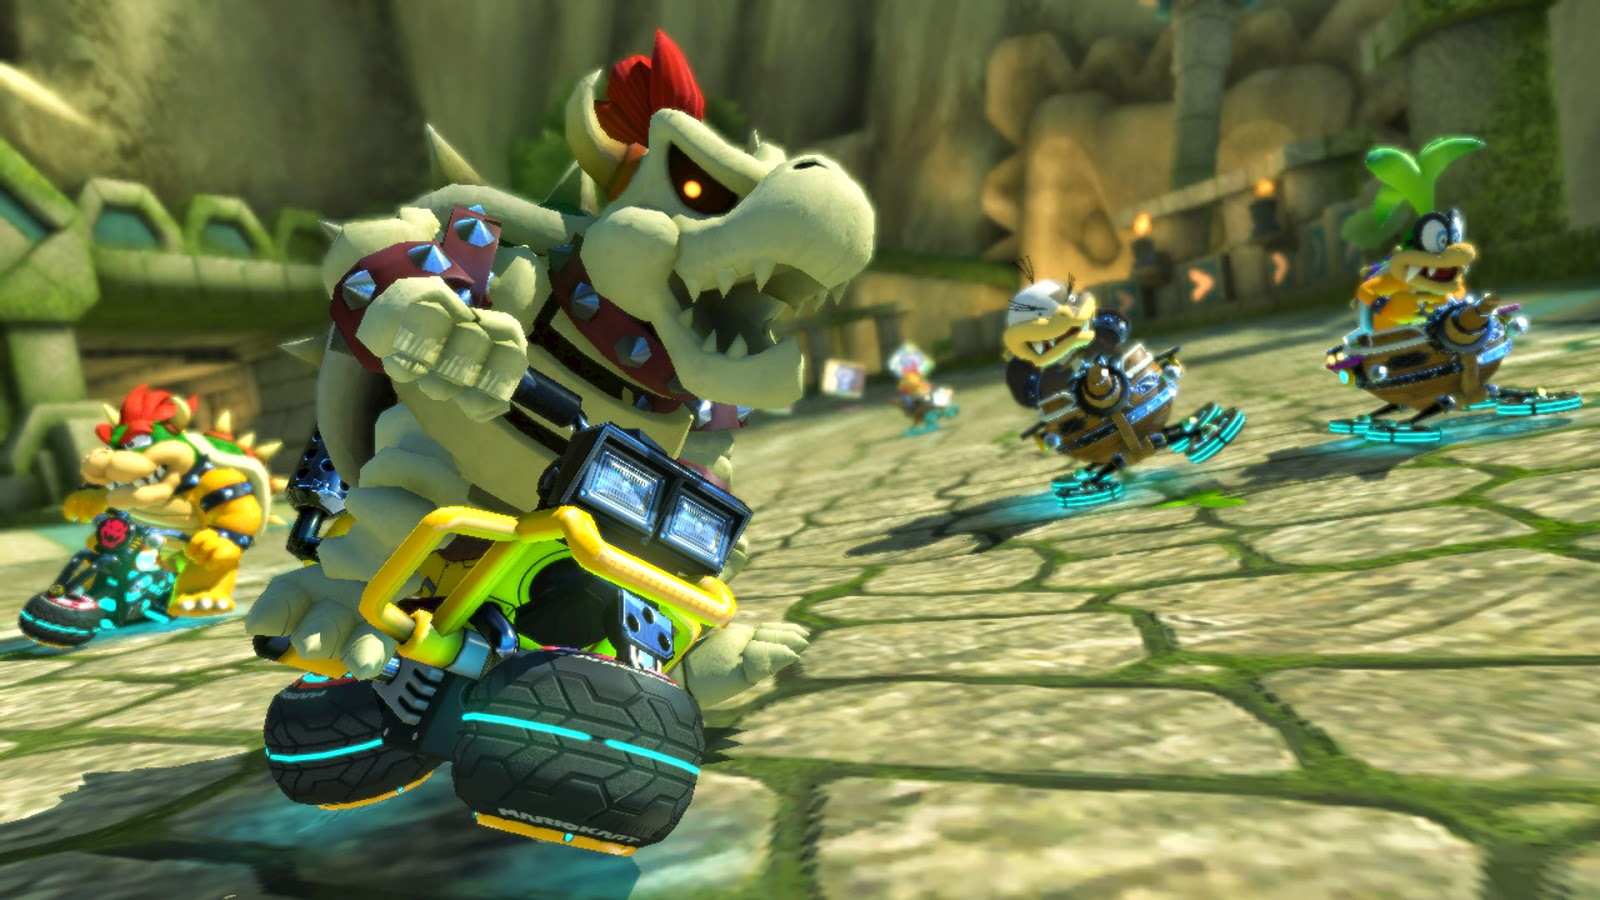 mario kart 8 how to buy dlc